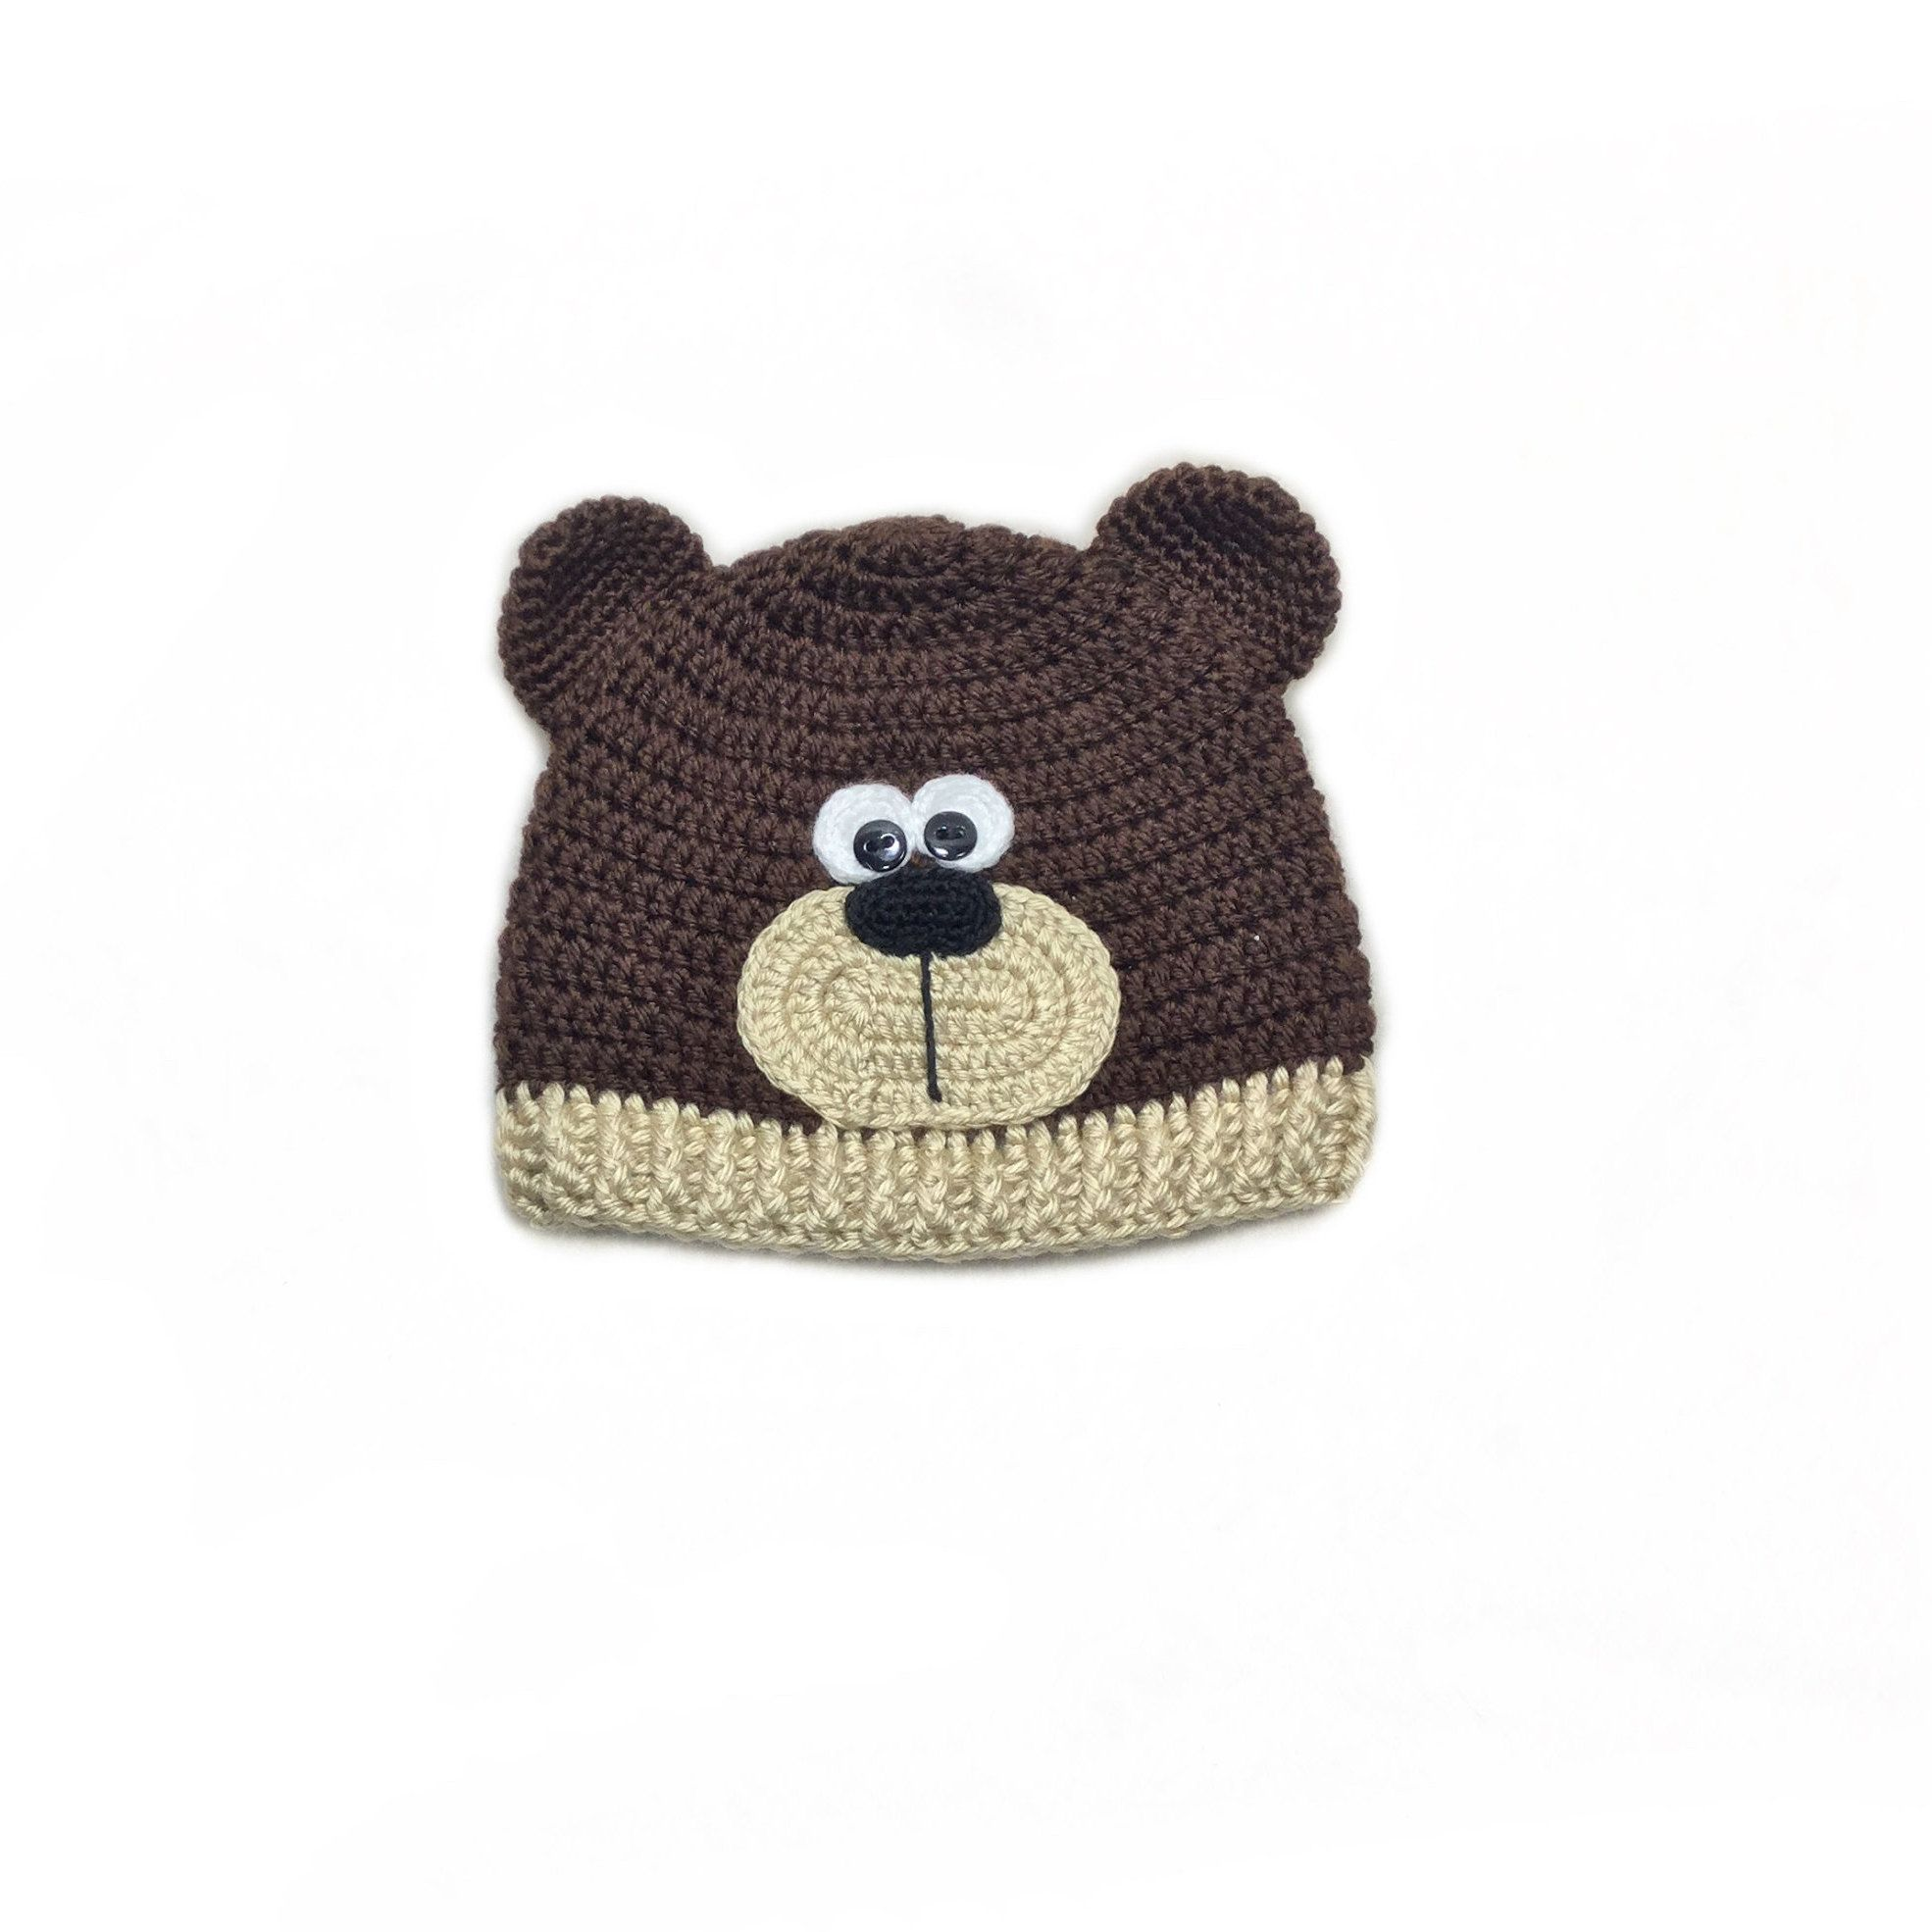 3e779d26824 Crochet bear hat teddy brown Baby outfit Teddy bear set Newborn photo props Crochet  Teddy Bear Baby beanie Crochet baby hat by ABdesignCrafts on Etsy